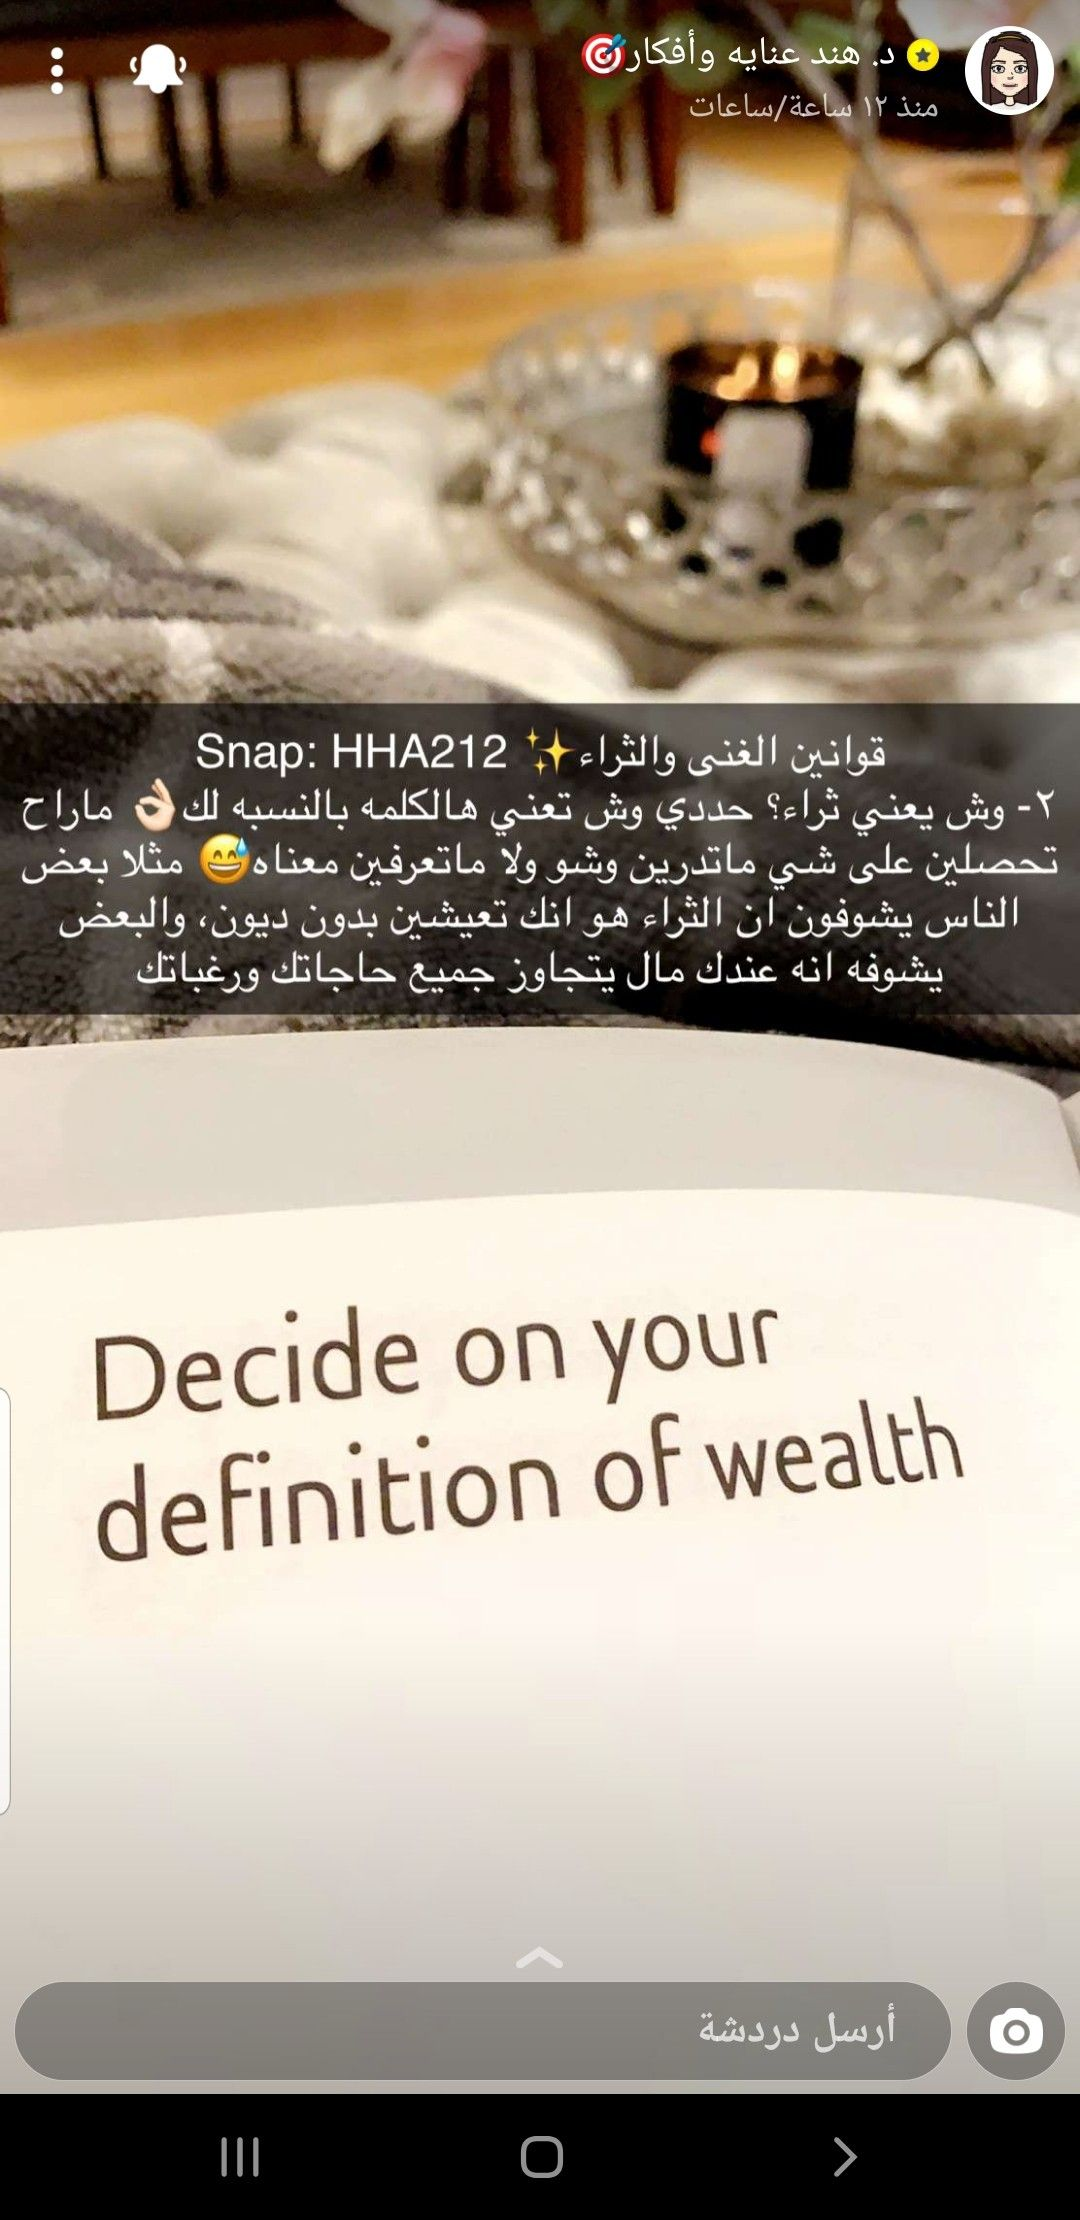 Pin By نوال On تطوير نفس Definition Of Wealth Cards Against Humanity Definitions